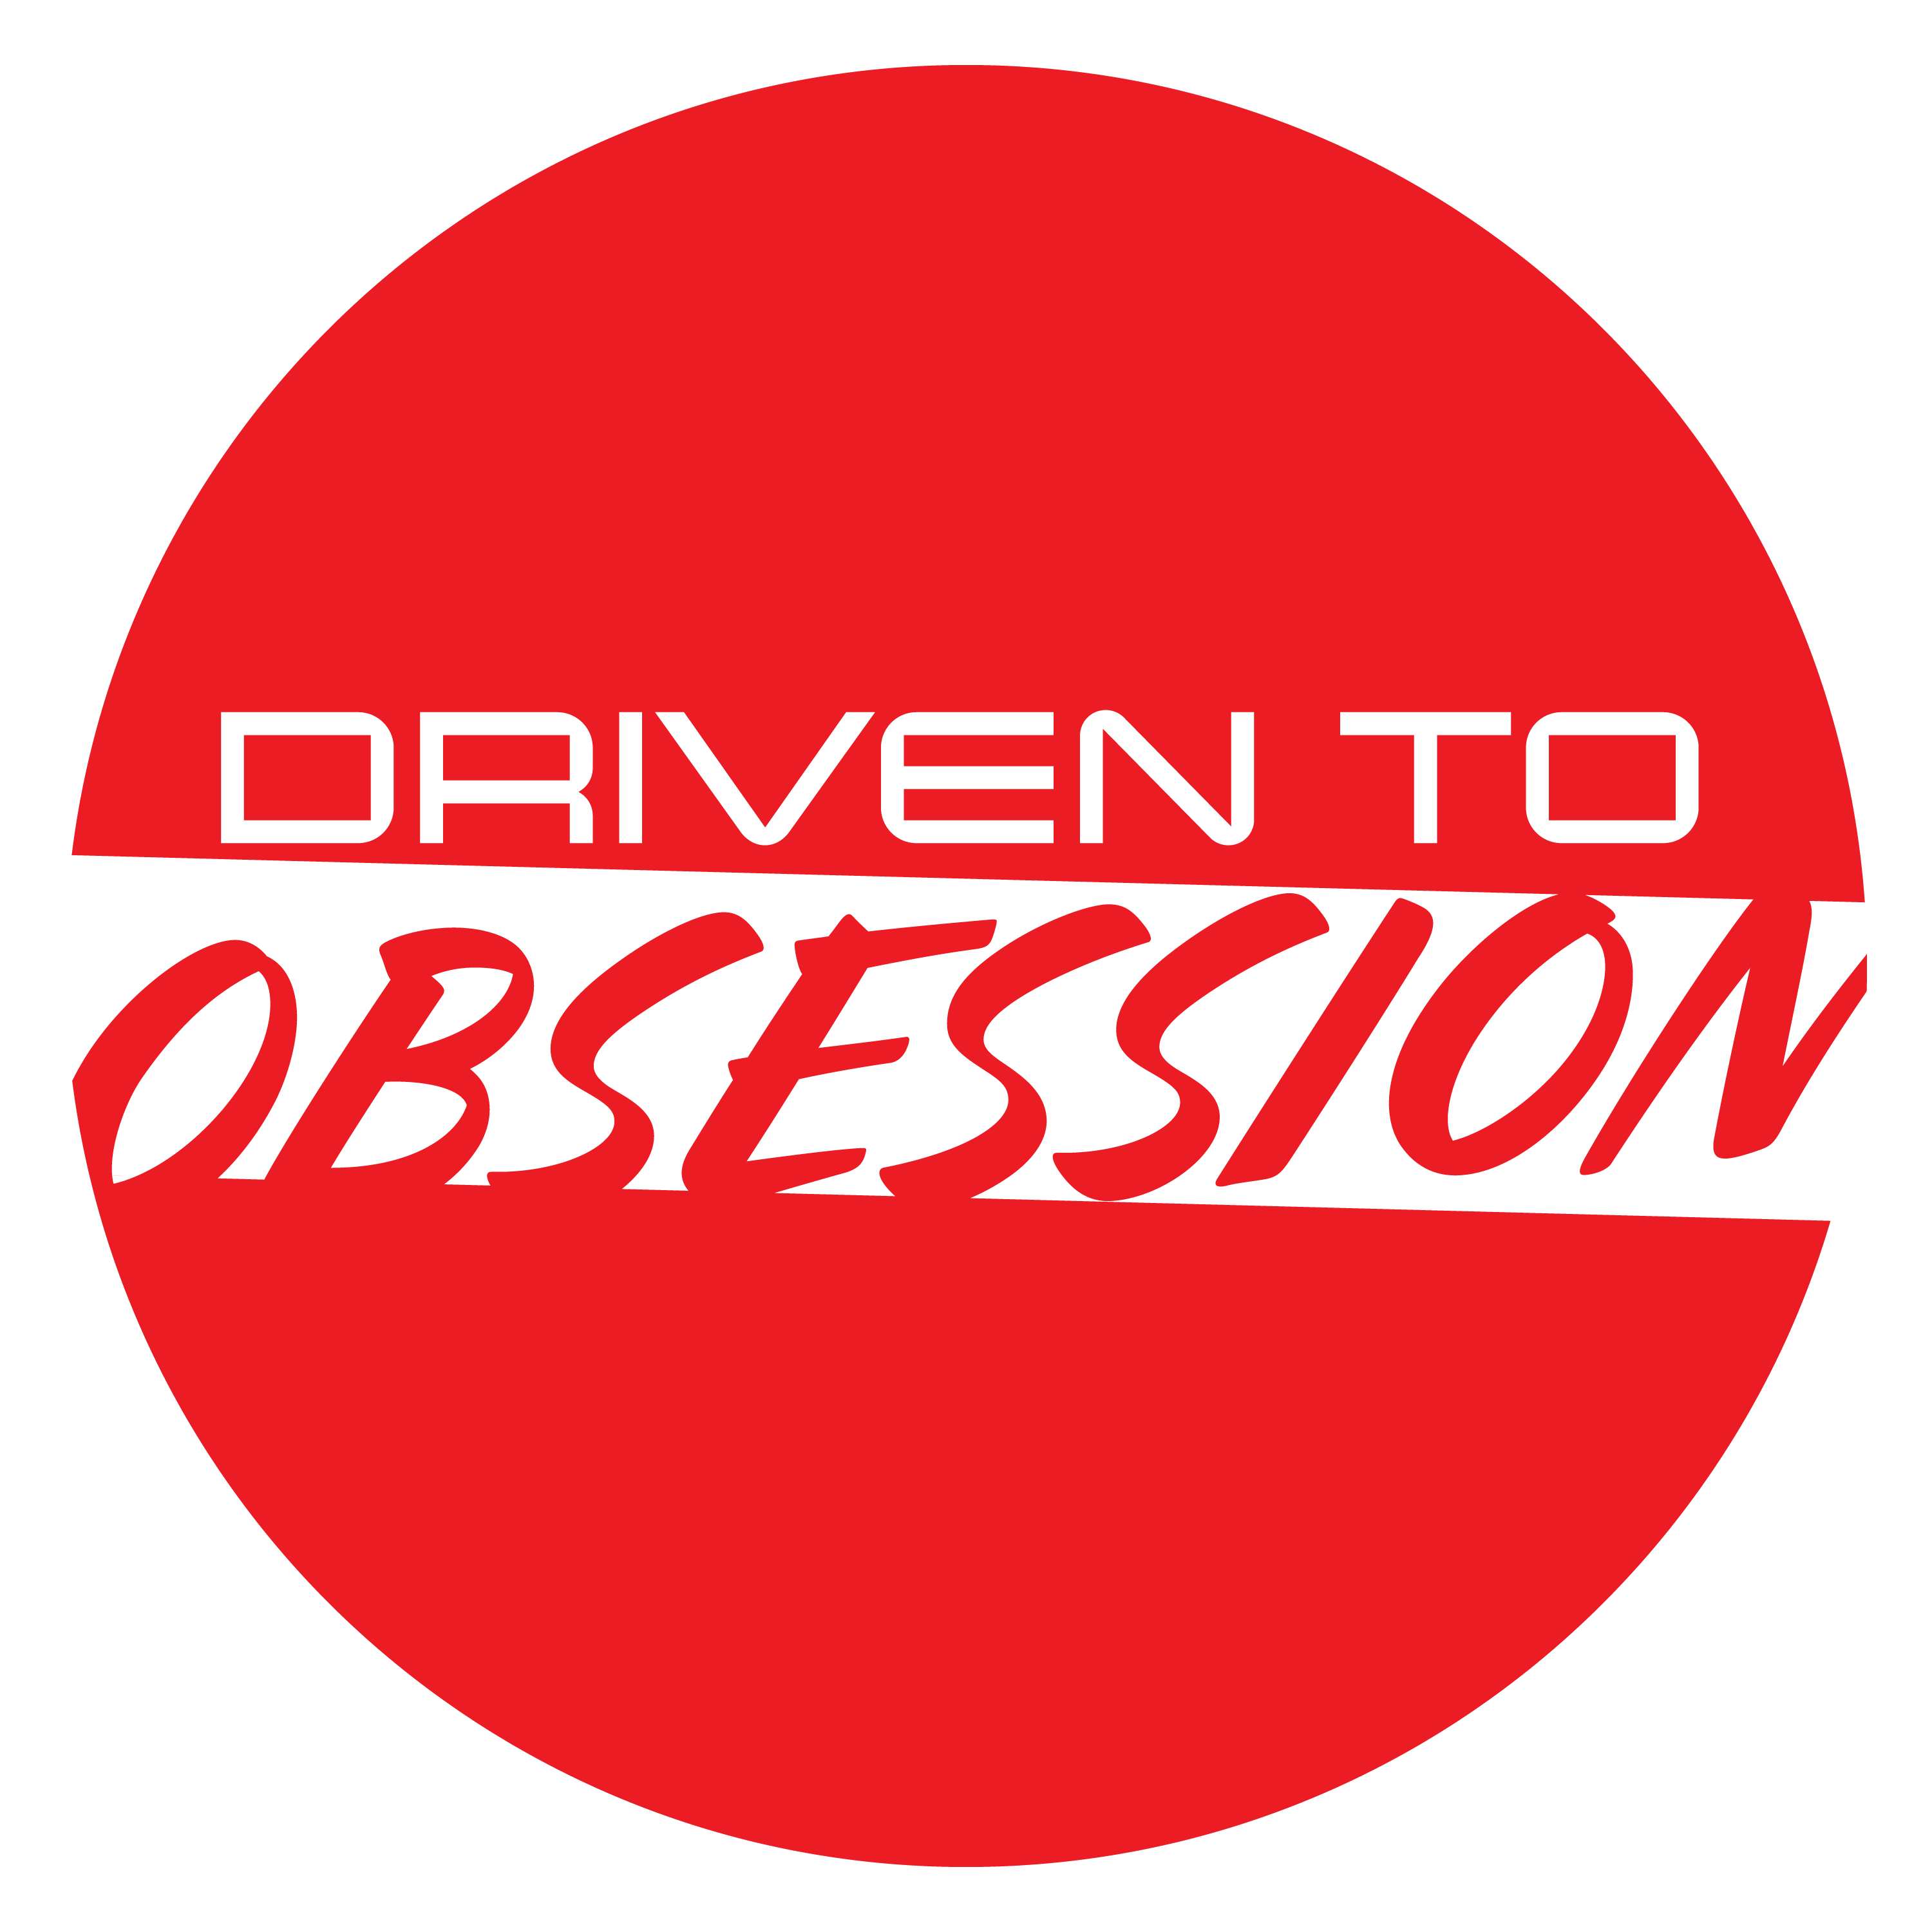 Driven To Obsession